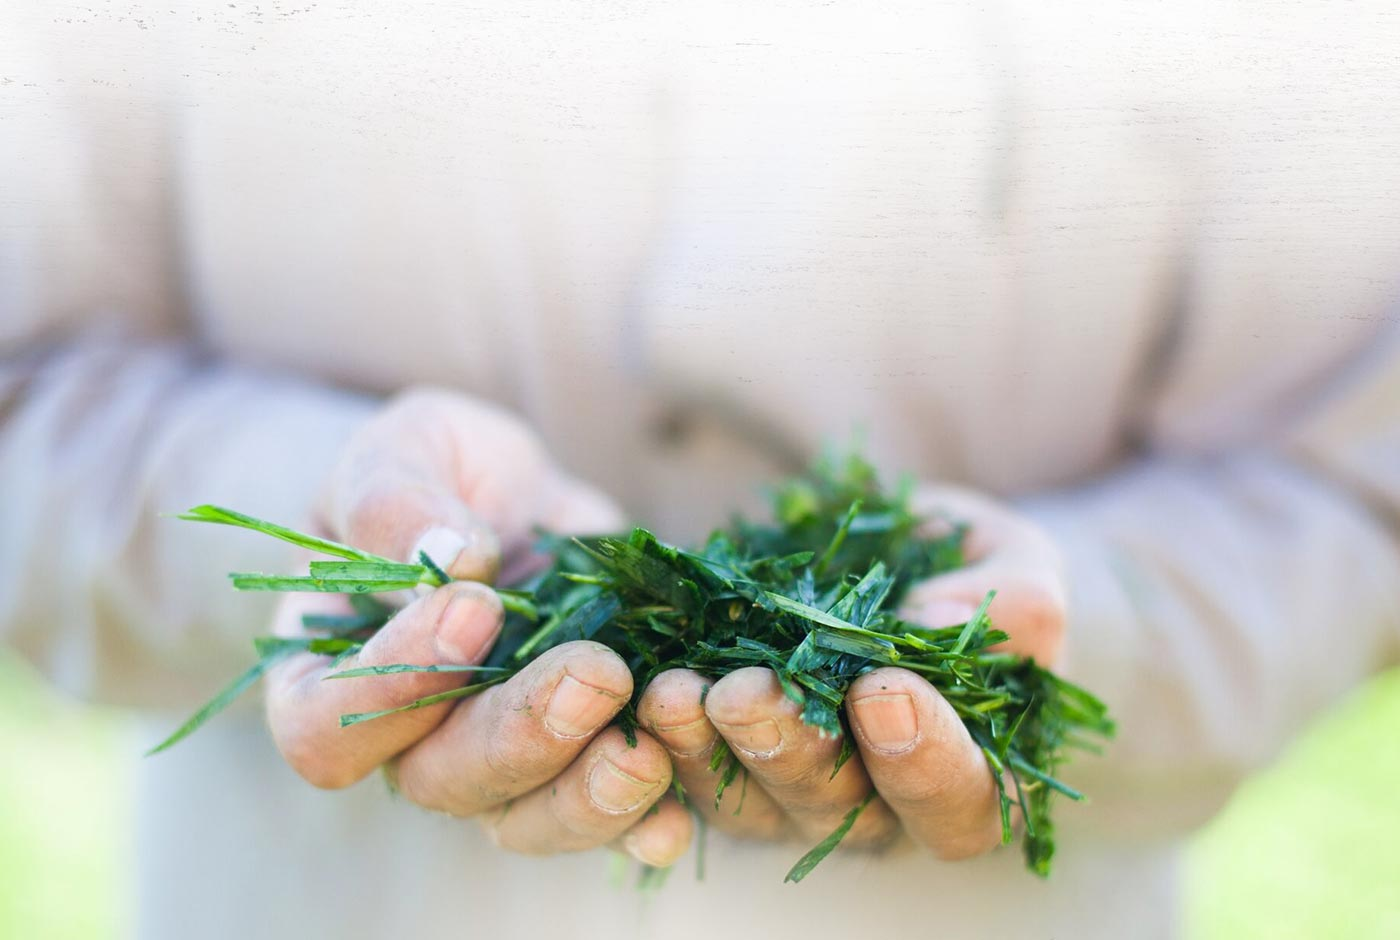 Hands holding Grass